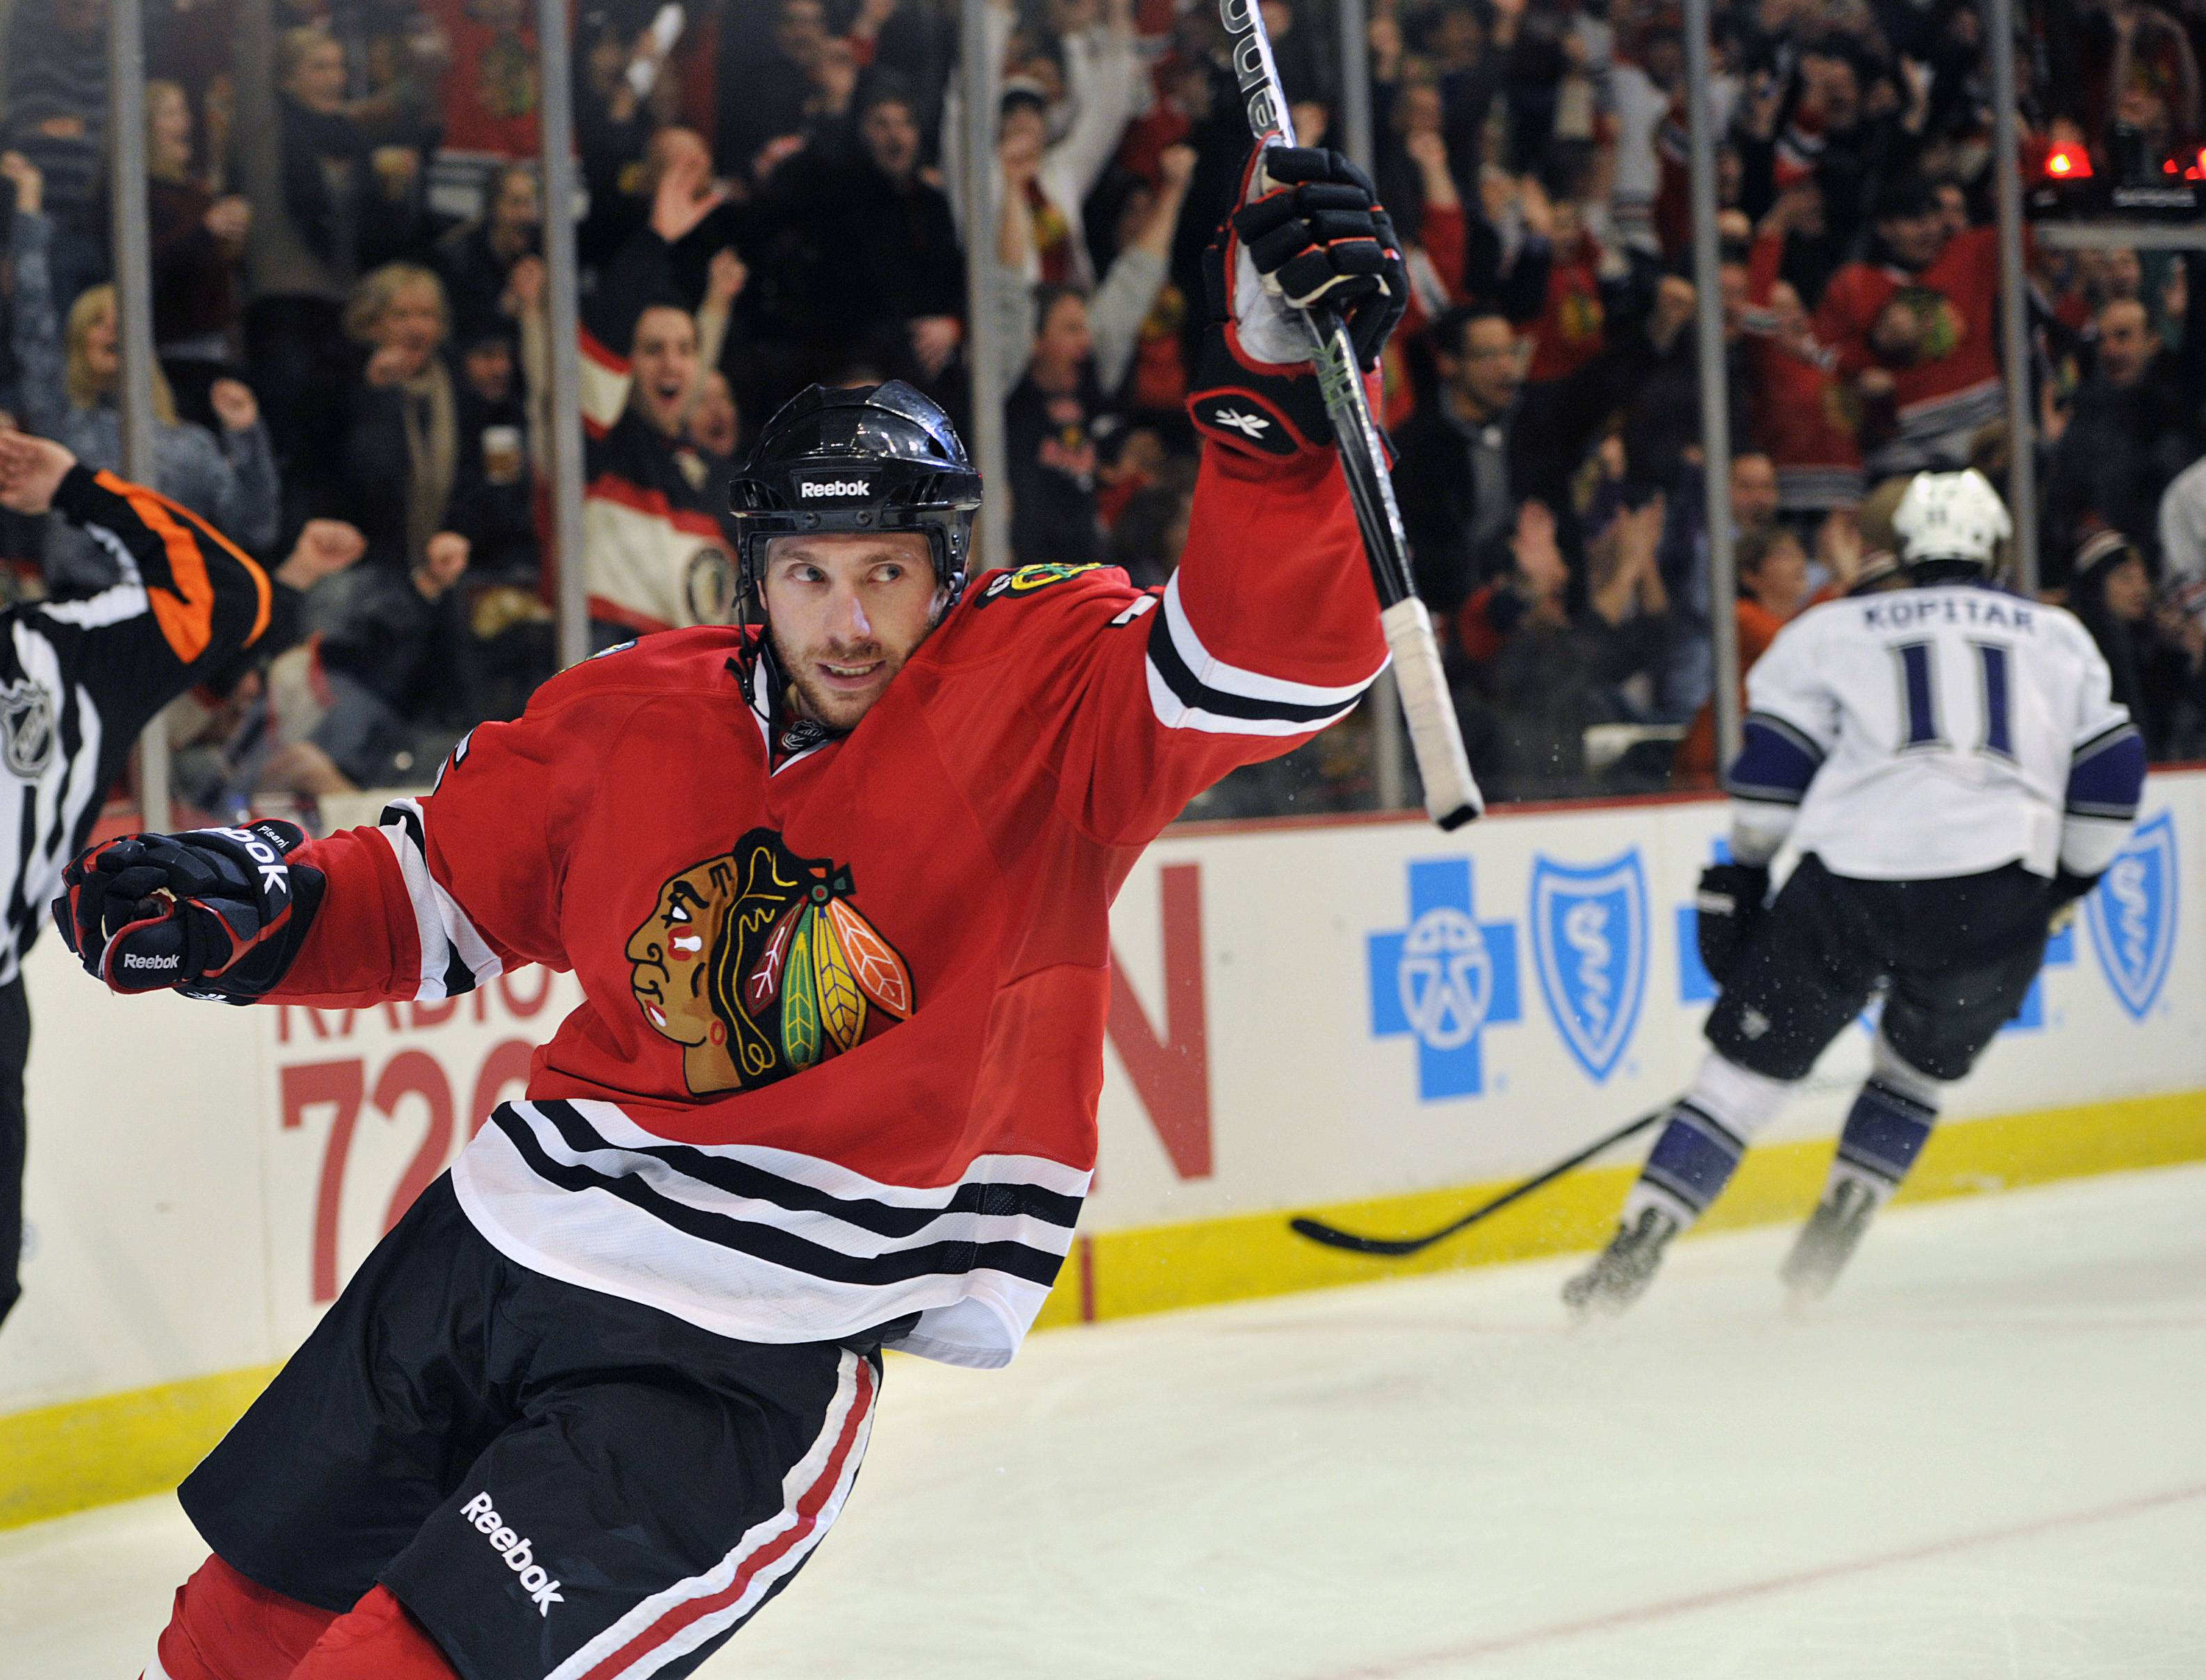 Blackhawks turning things around